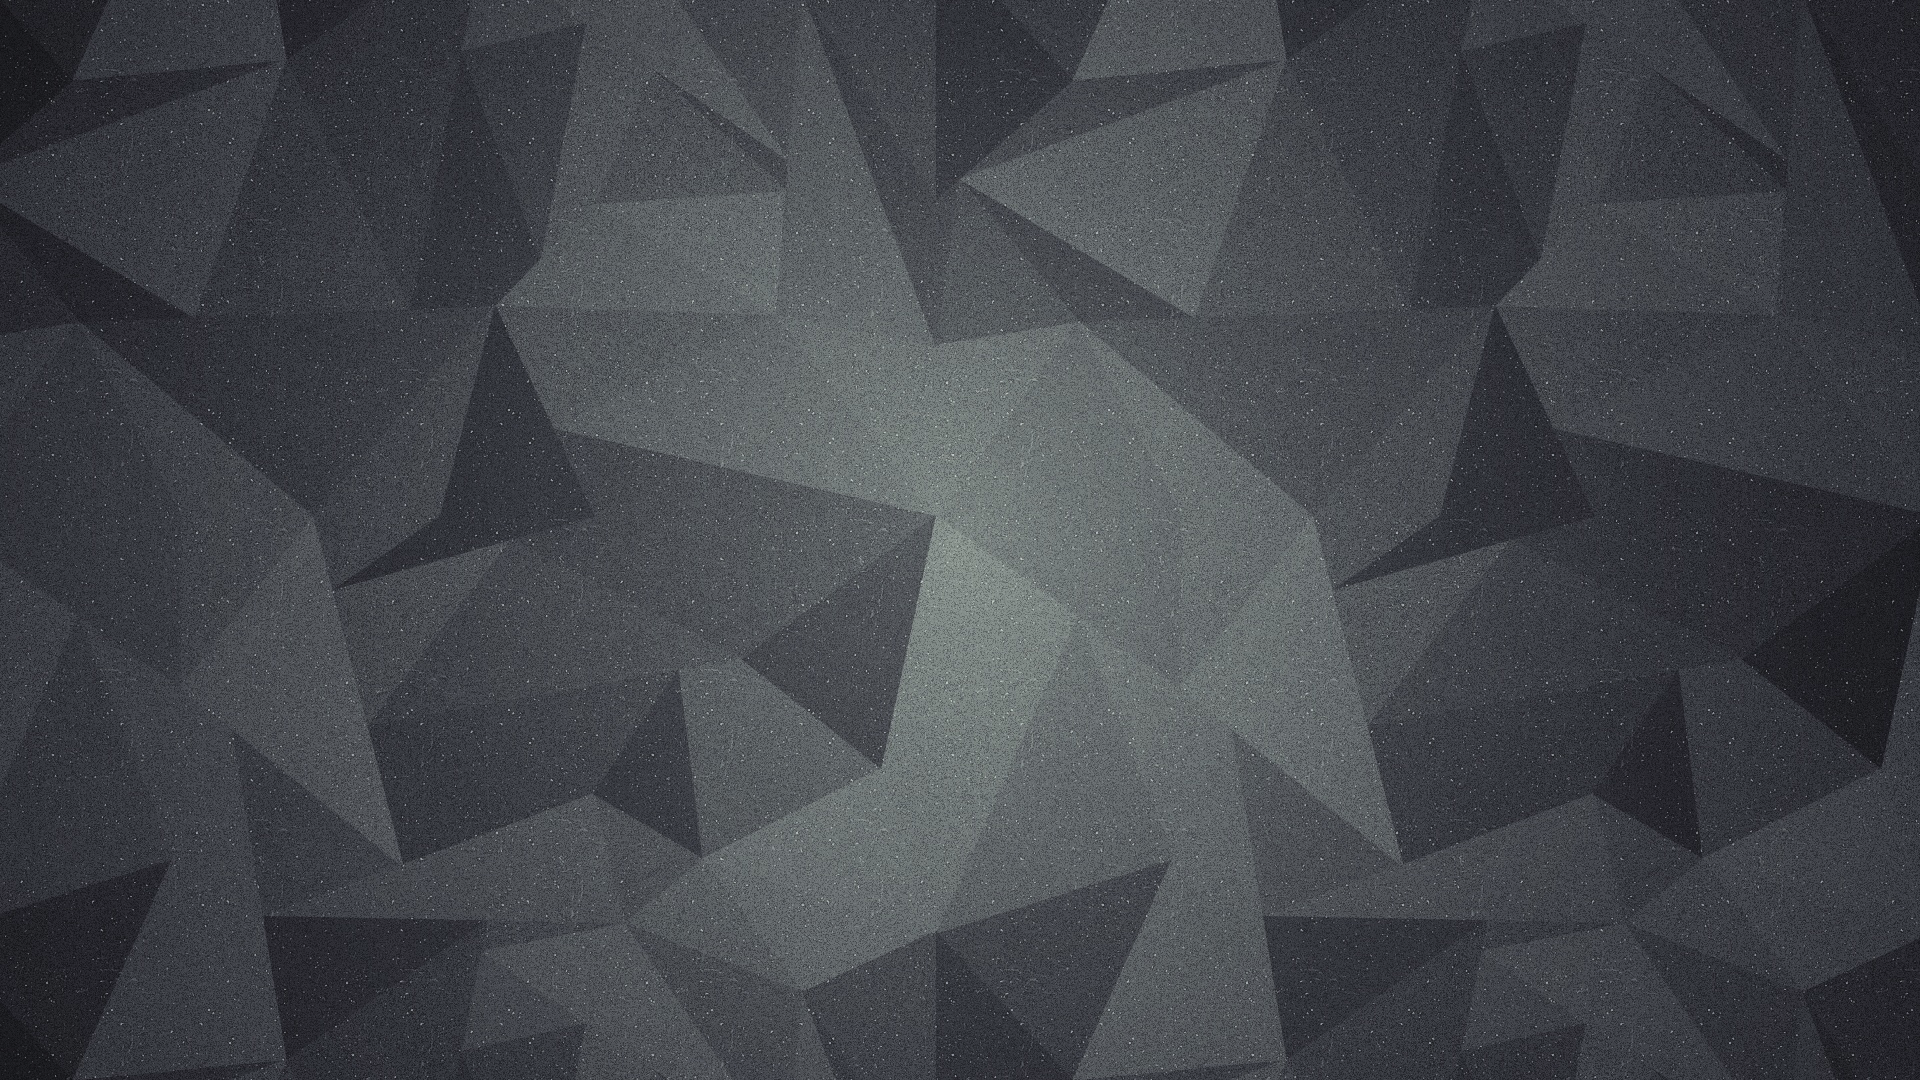 abstract wallpapers shapes geometric wallpaper desktop 1920x1080 1920x1080